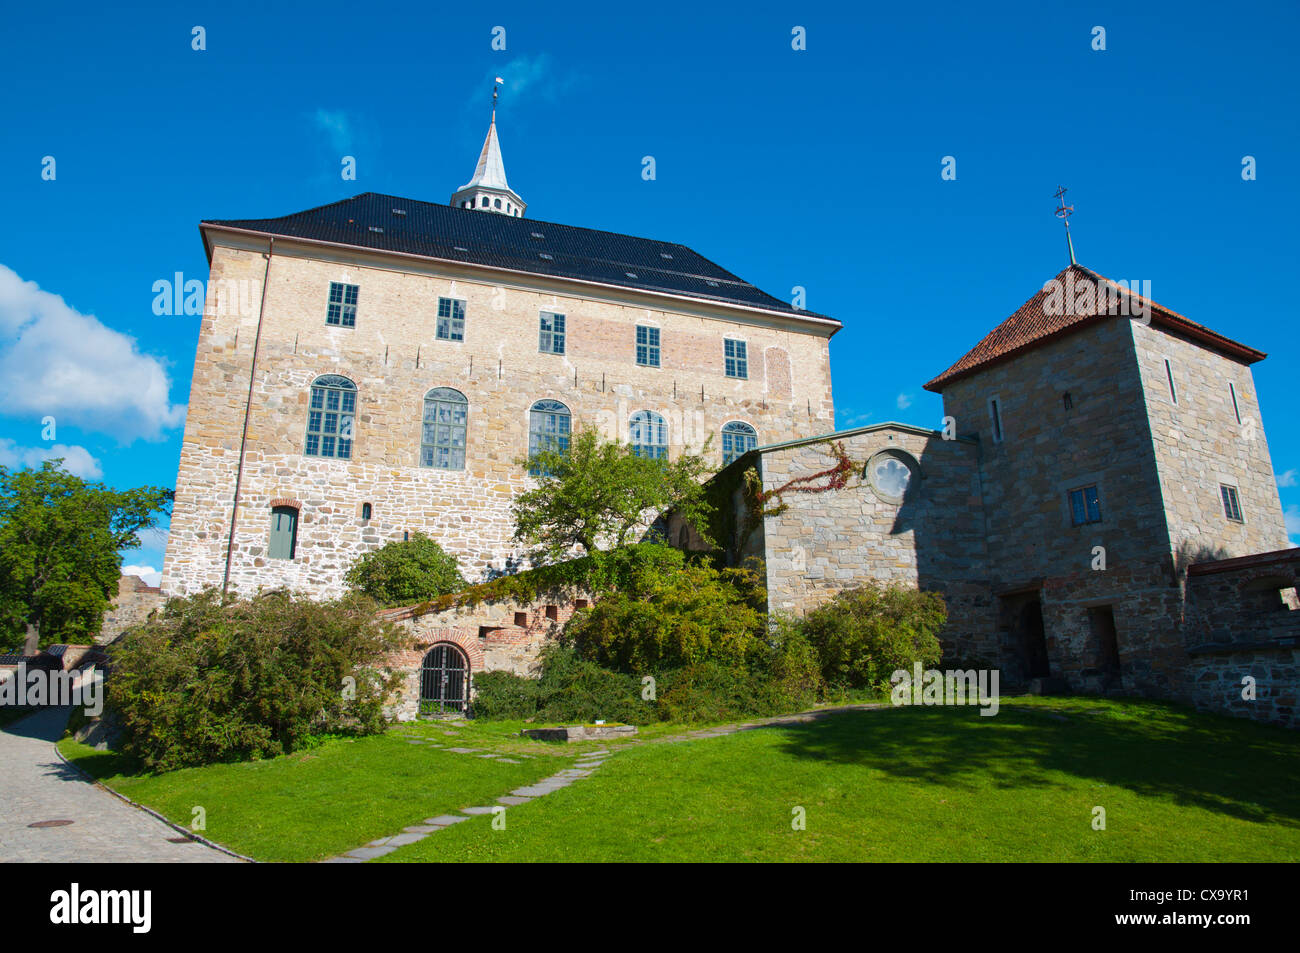 Akershus castle and fortress area Sentrum central Oslo Norway Europe - Stock Image